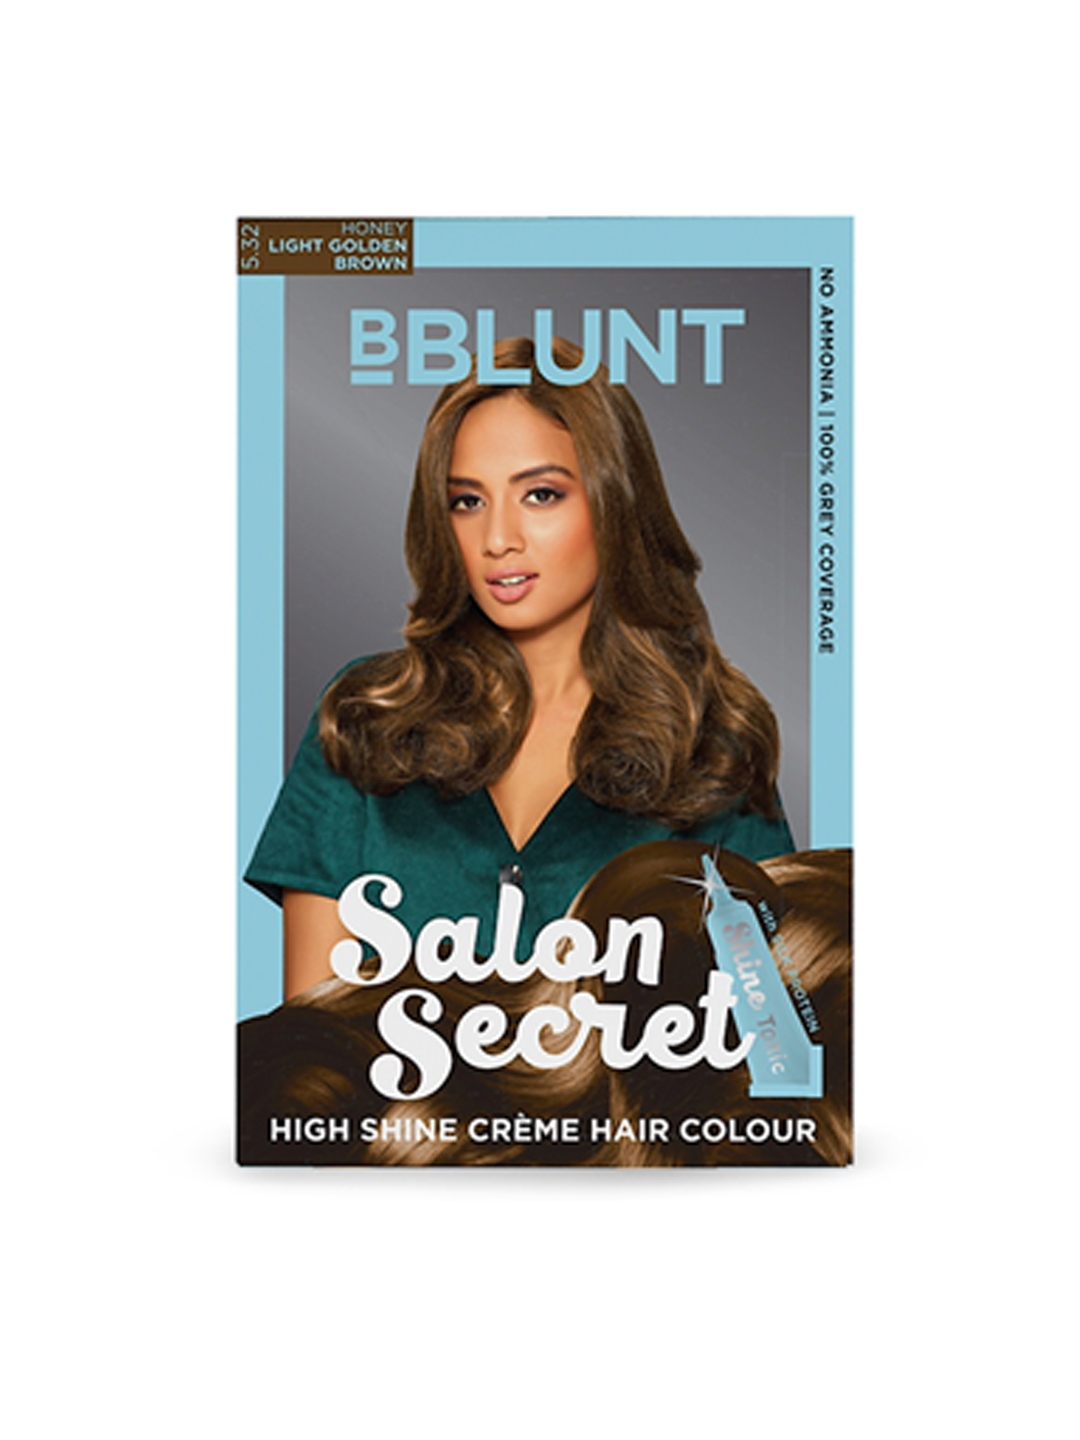 BBlunt Salon Secret High Shine Creme Hair Colour, Honey Light Golden Brown